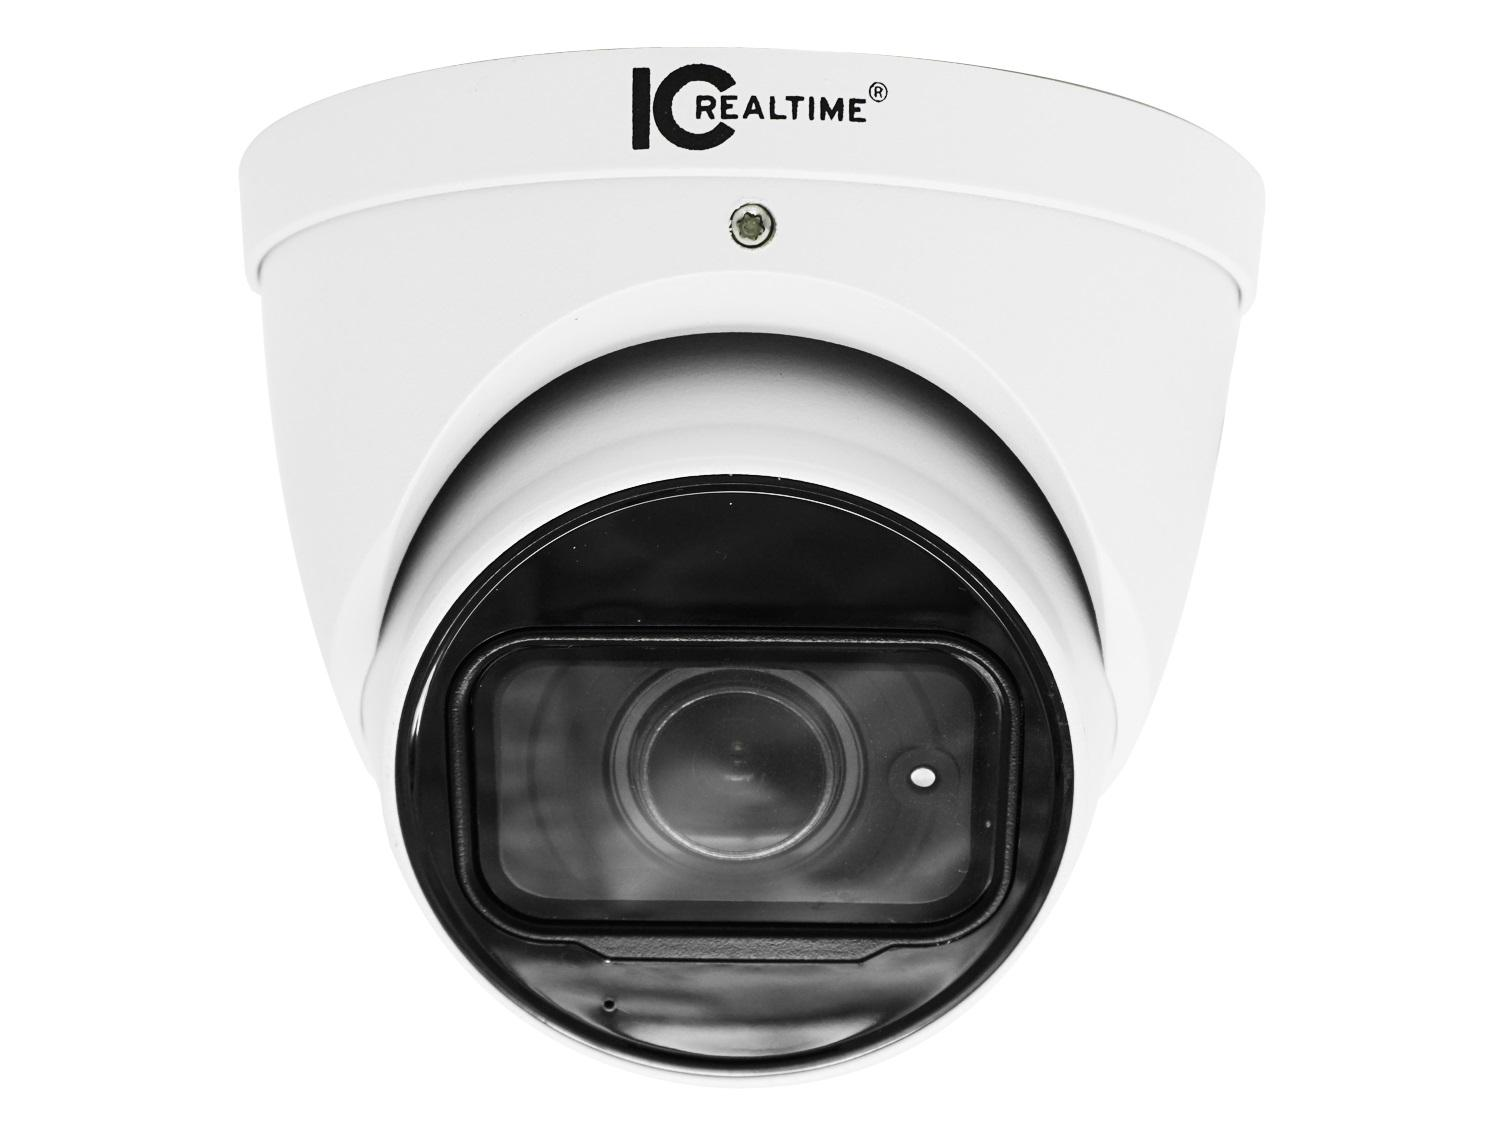 ICRealtime AVS-4KD8021-IR 8MP HD-AVS Indoor/Outdoor Mid Size Eyeball Dome Camera/2.8mm Lens/164ft Smart IR/Built-in Mic/12VDC